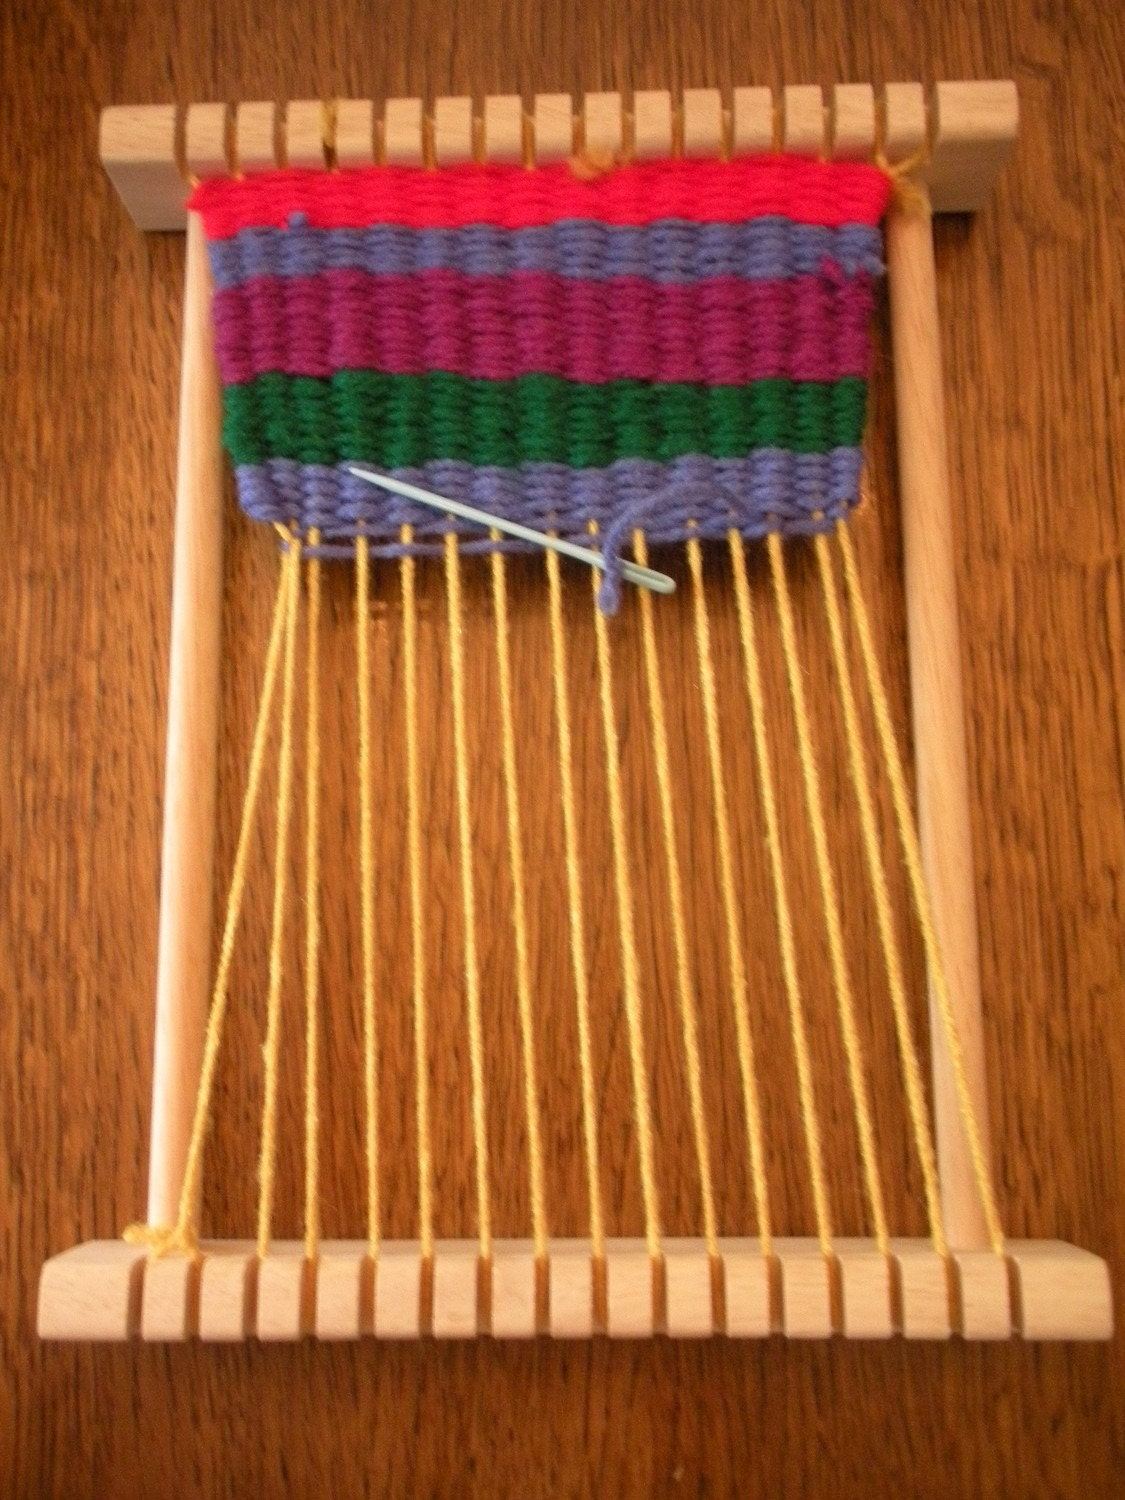 melissa and doug wooden multi craft loom instructions